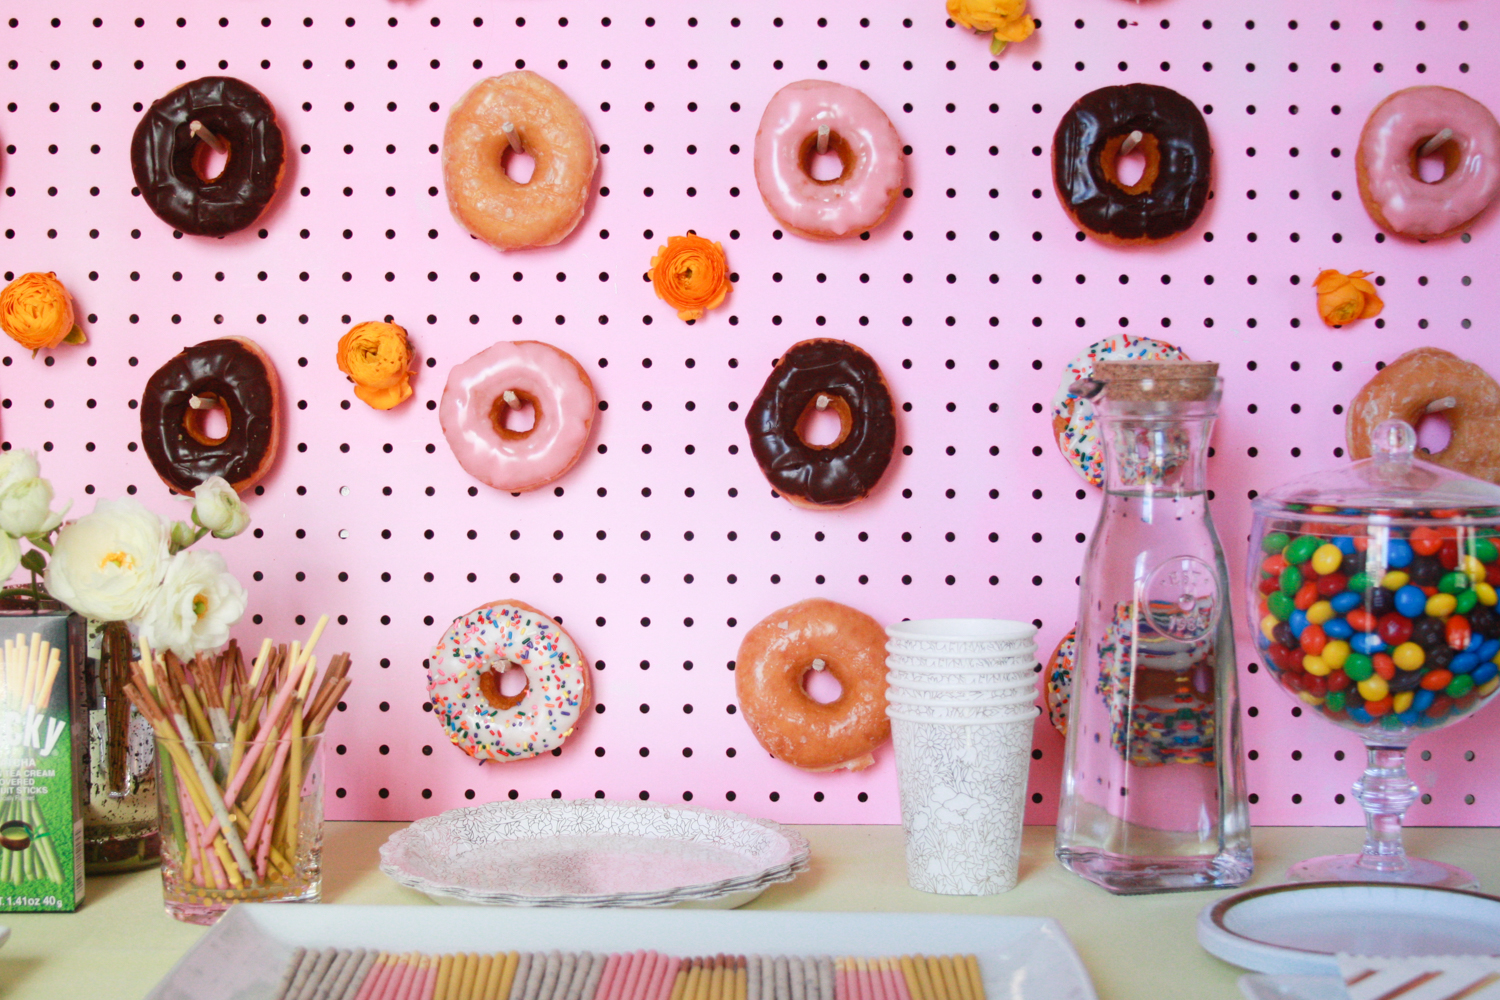 Making this DIY Donut Wall ASAP! So easy!